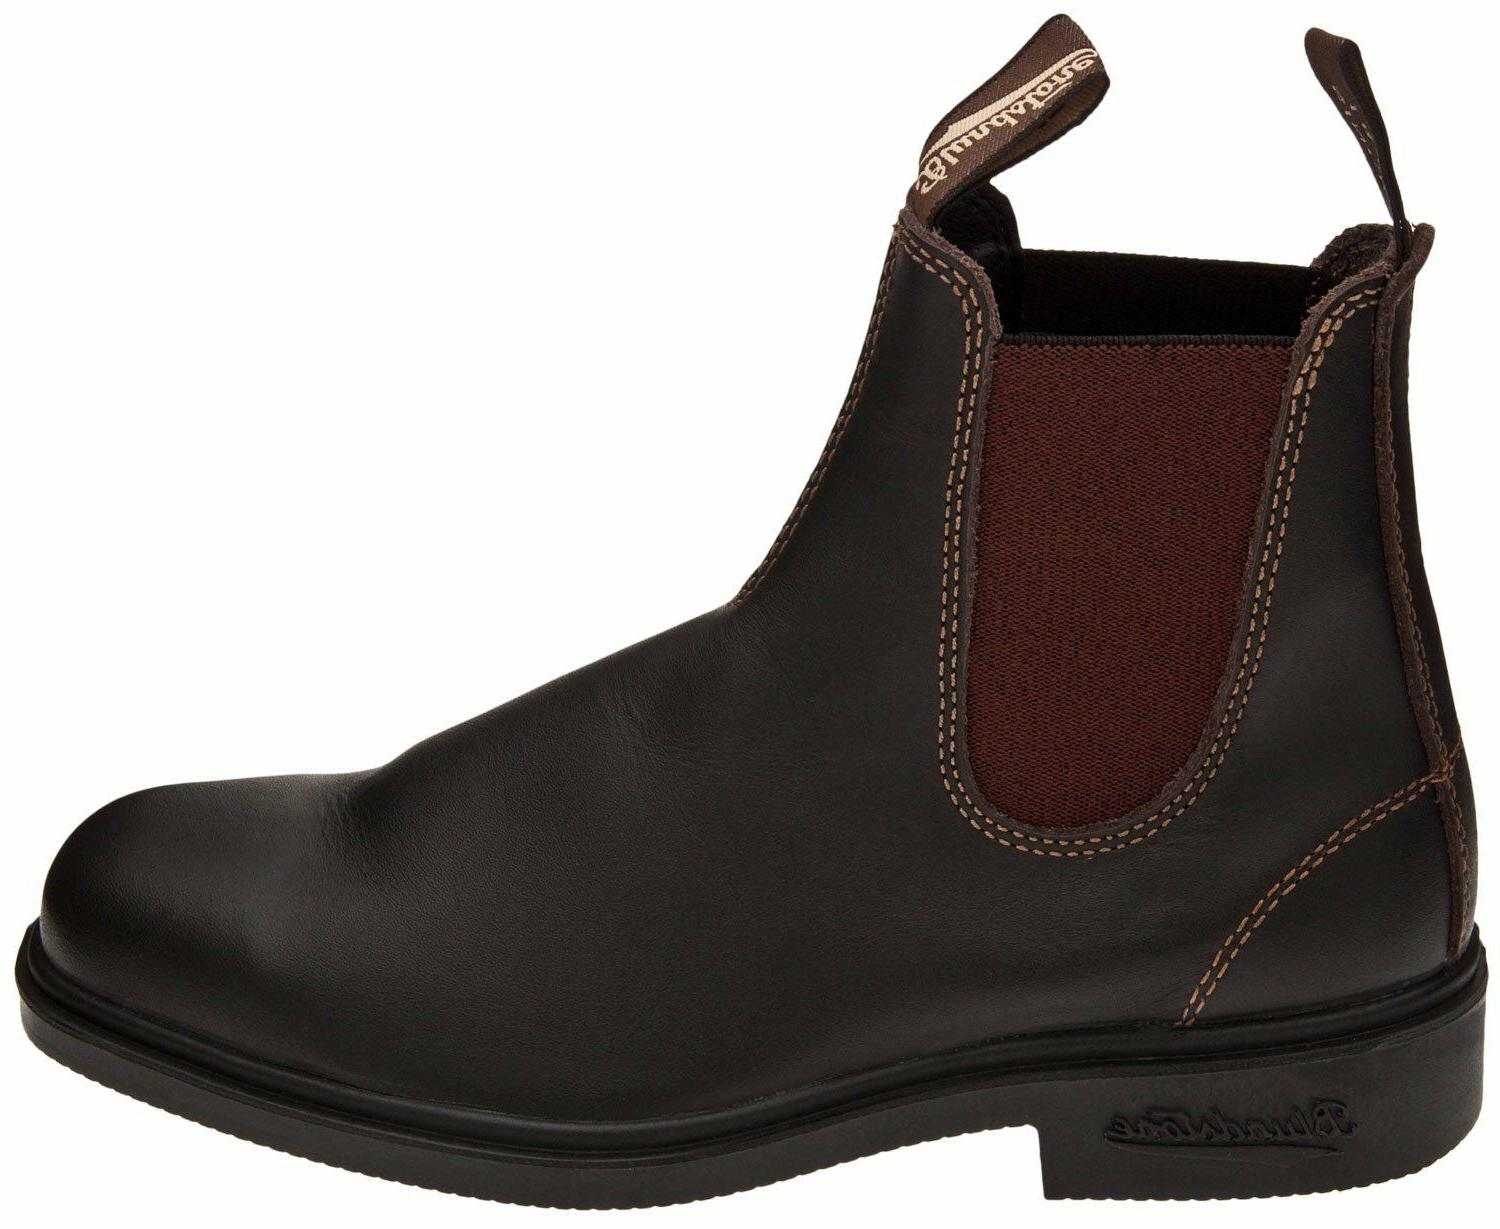 Blundstone 500 Men's Pull On Boots Stout Brown Leather Size